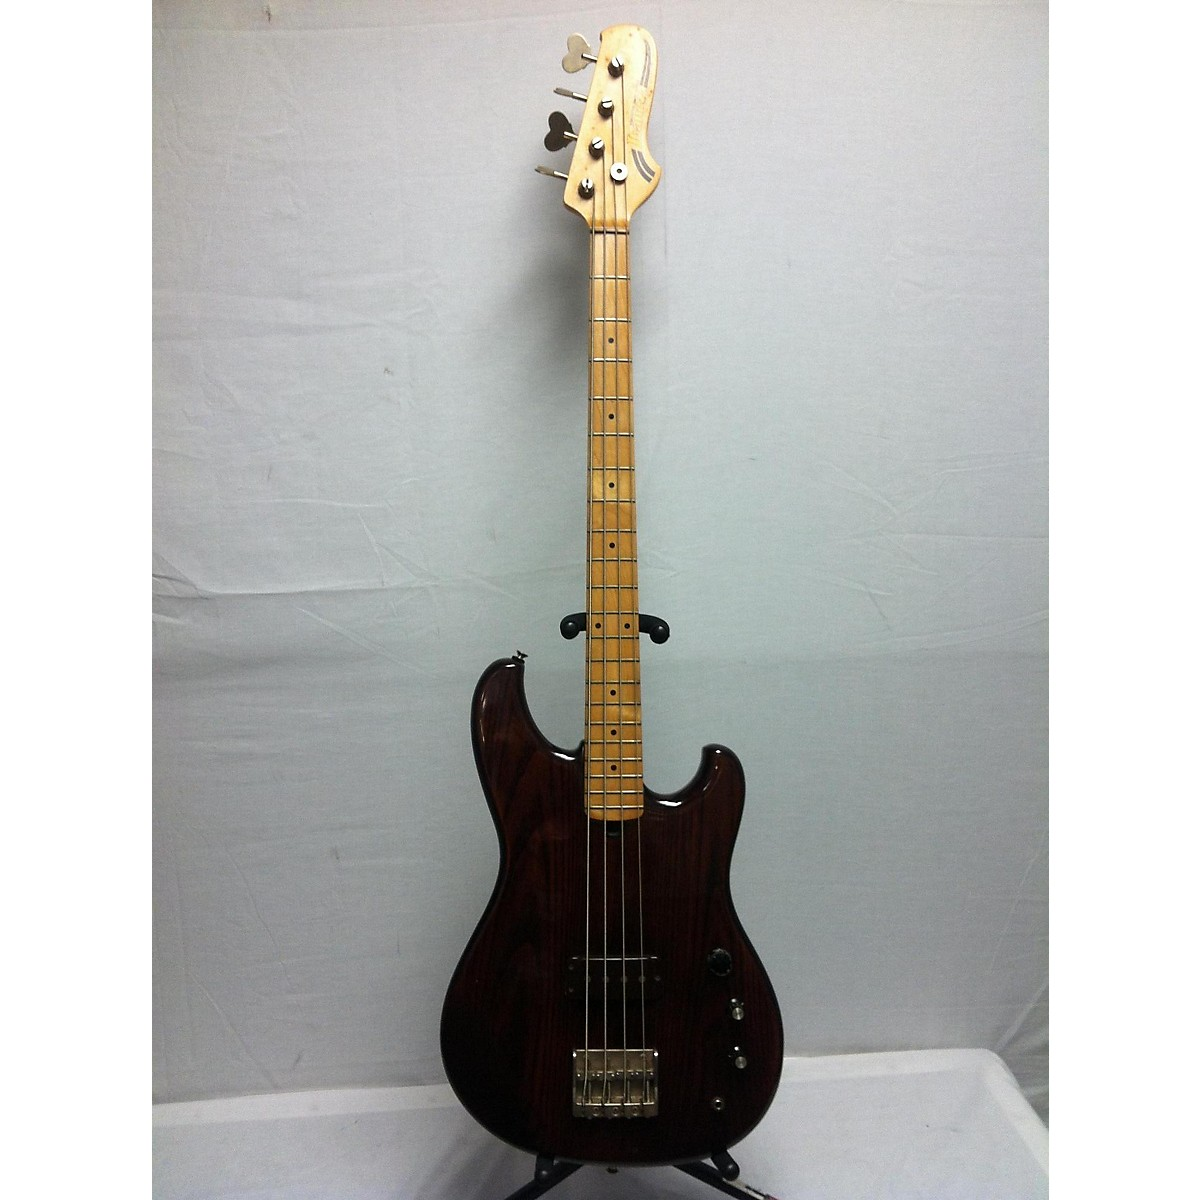 Ibanez 1979 RS-900 Electric Bass Guitar